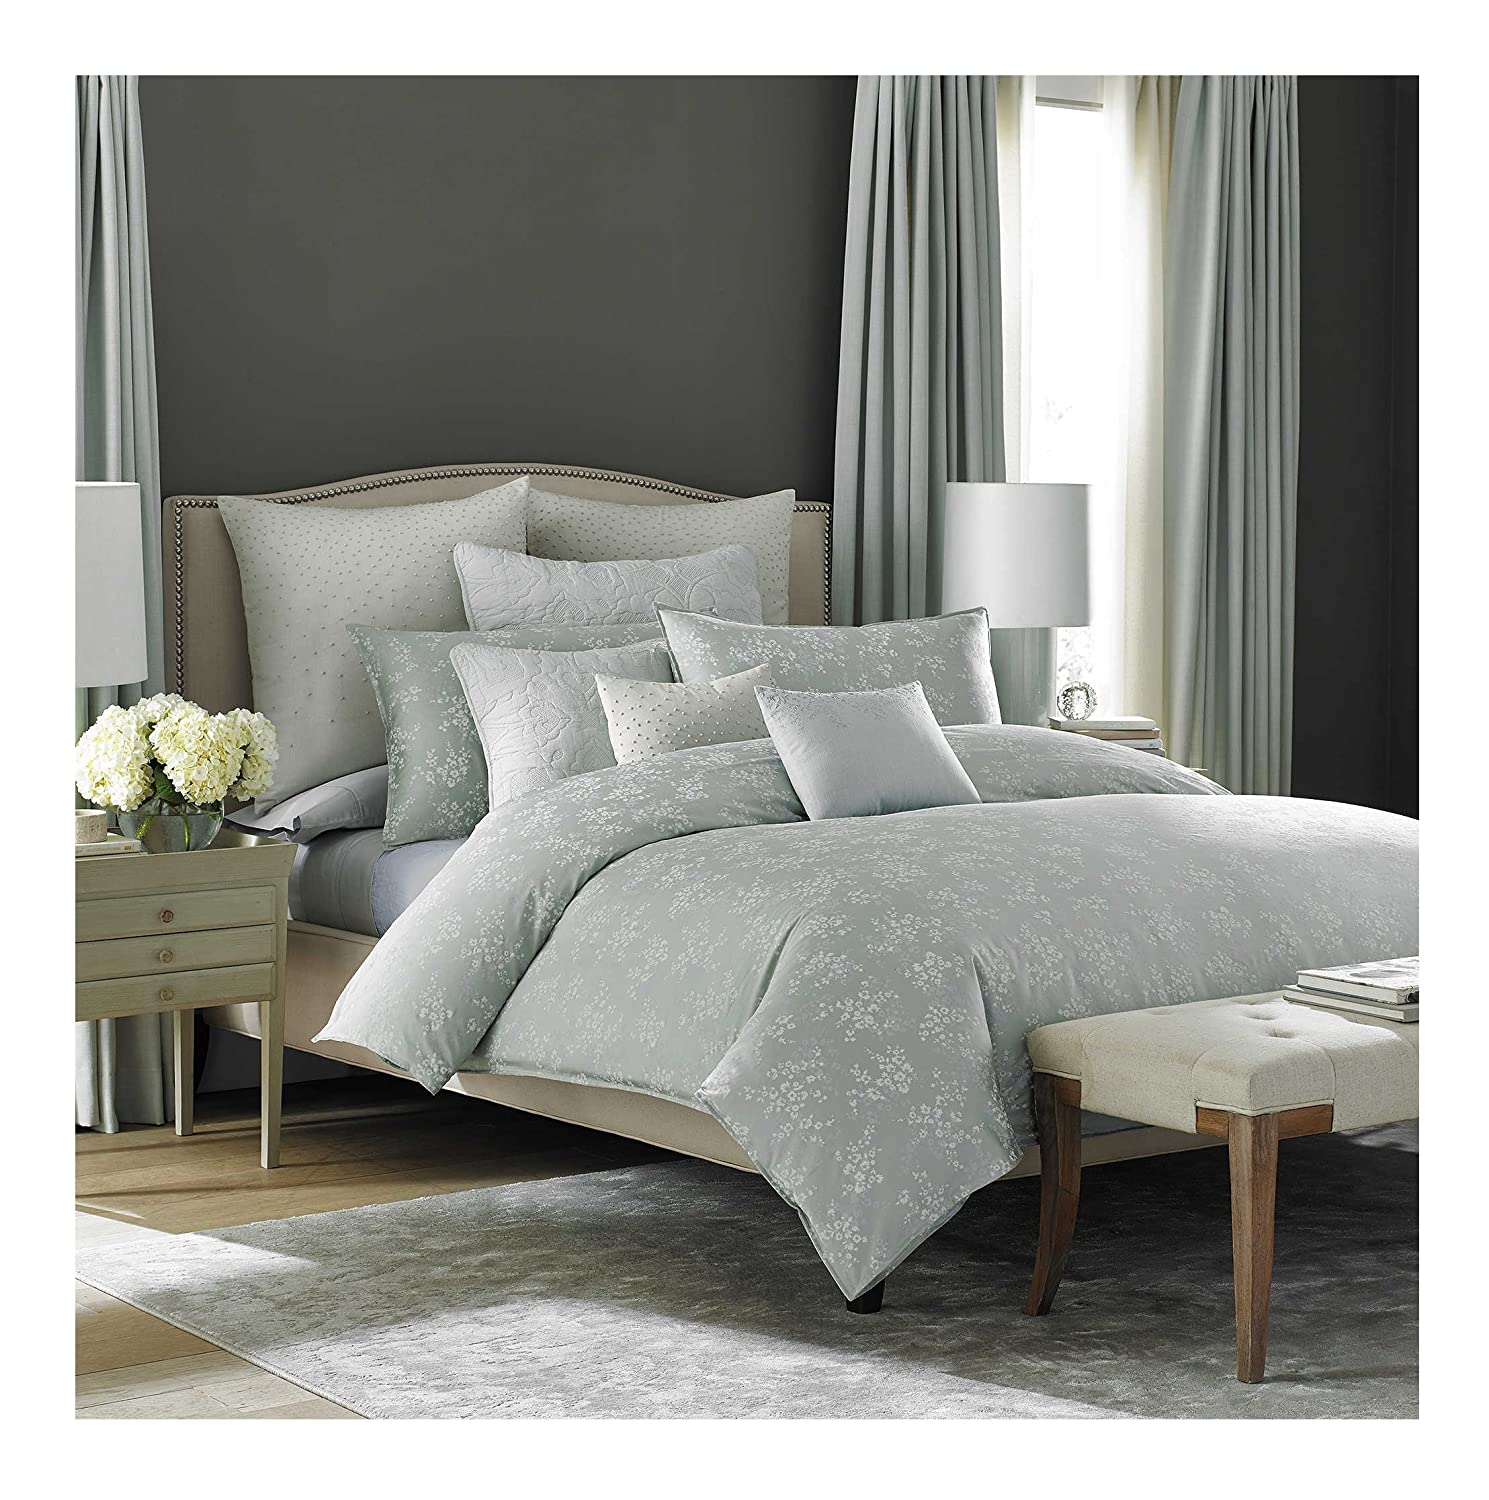 Barbara Barry Queen Size Pillow Sham from the Florette Bedding Collection